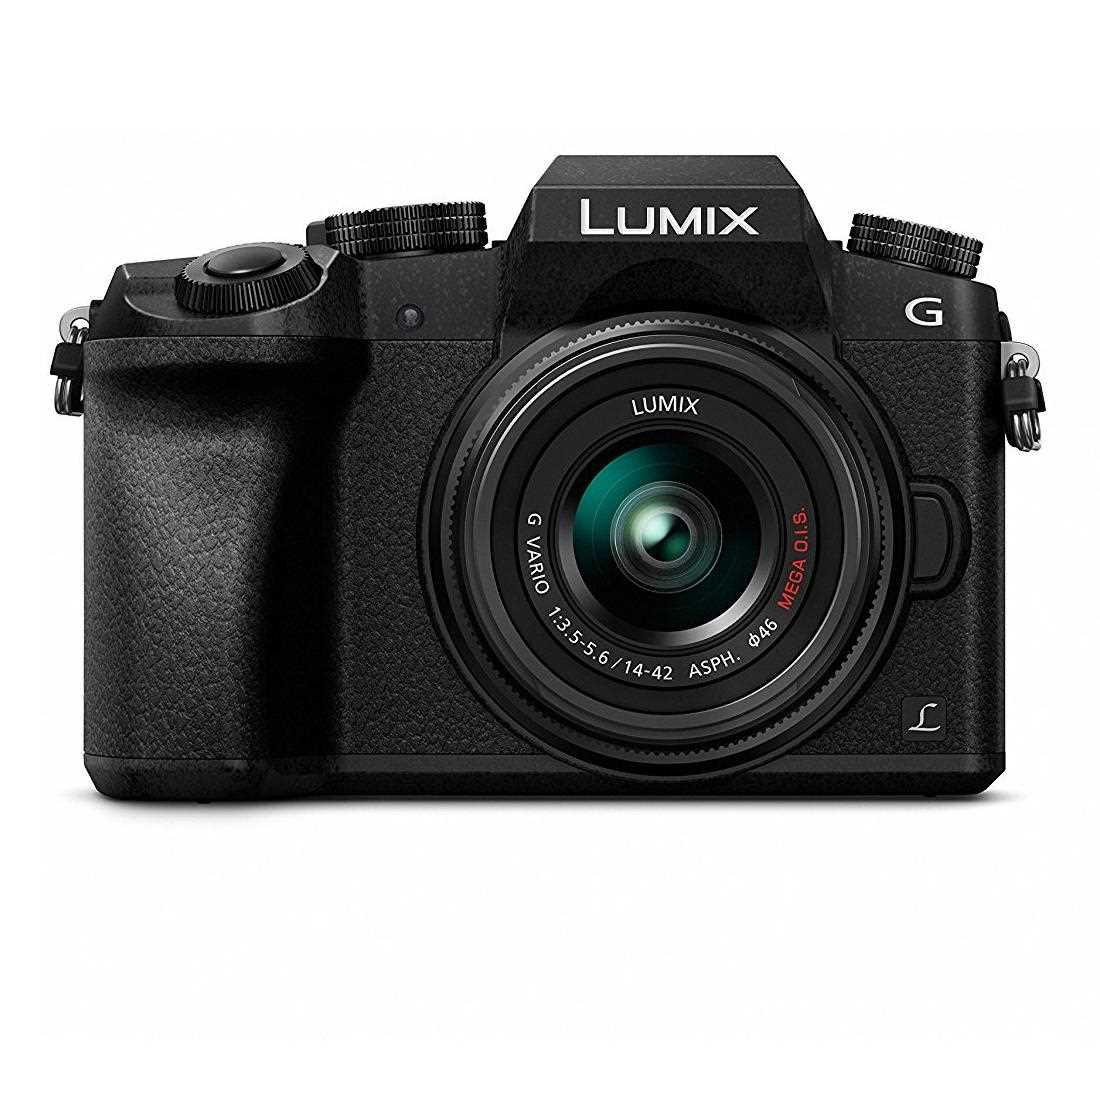 Panasonic Lumix DMC-G7KK Camera with 14-42 mm Lens